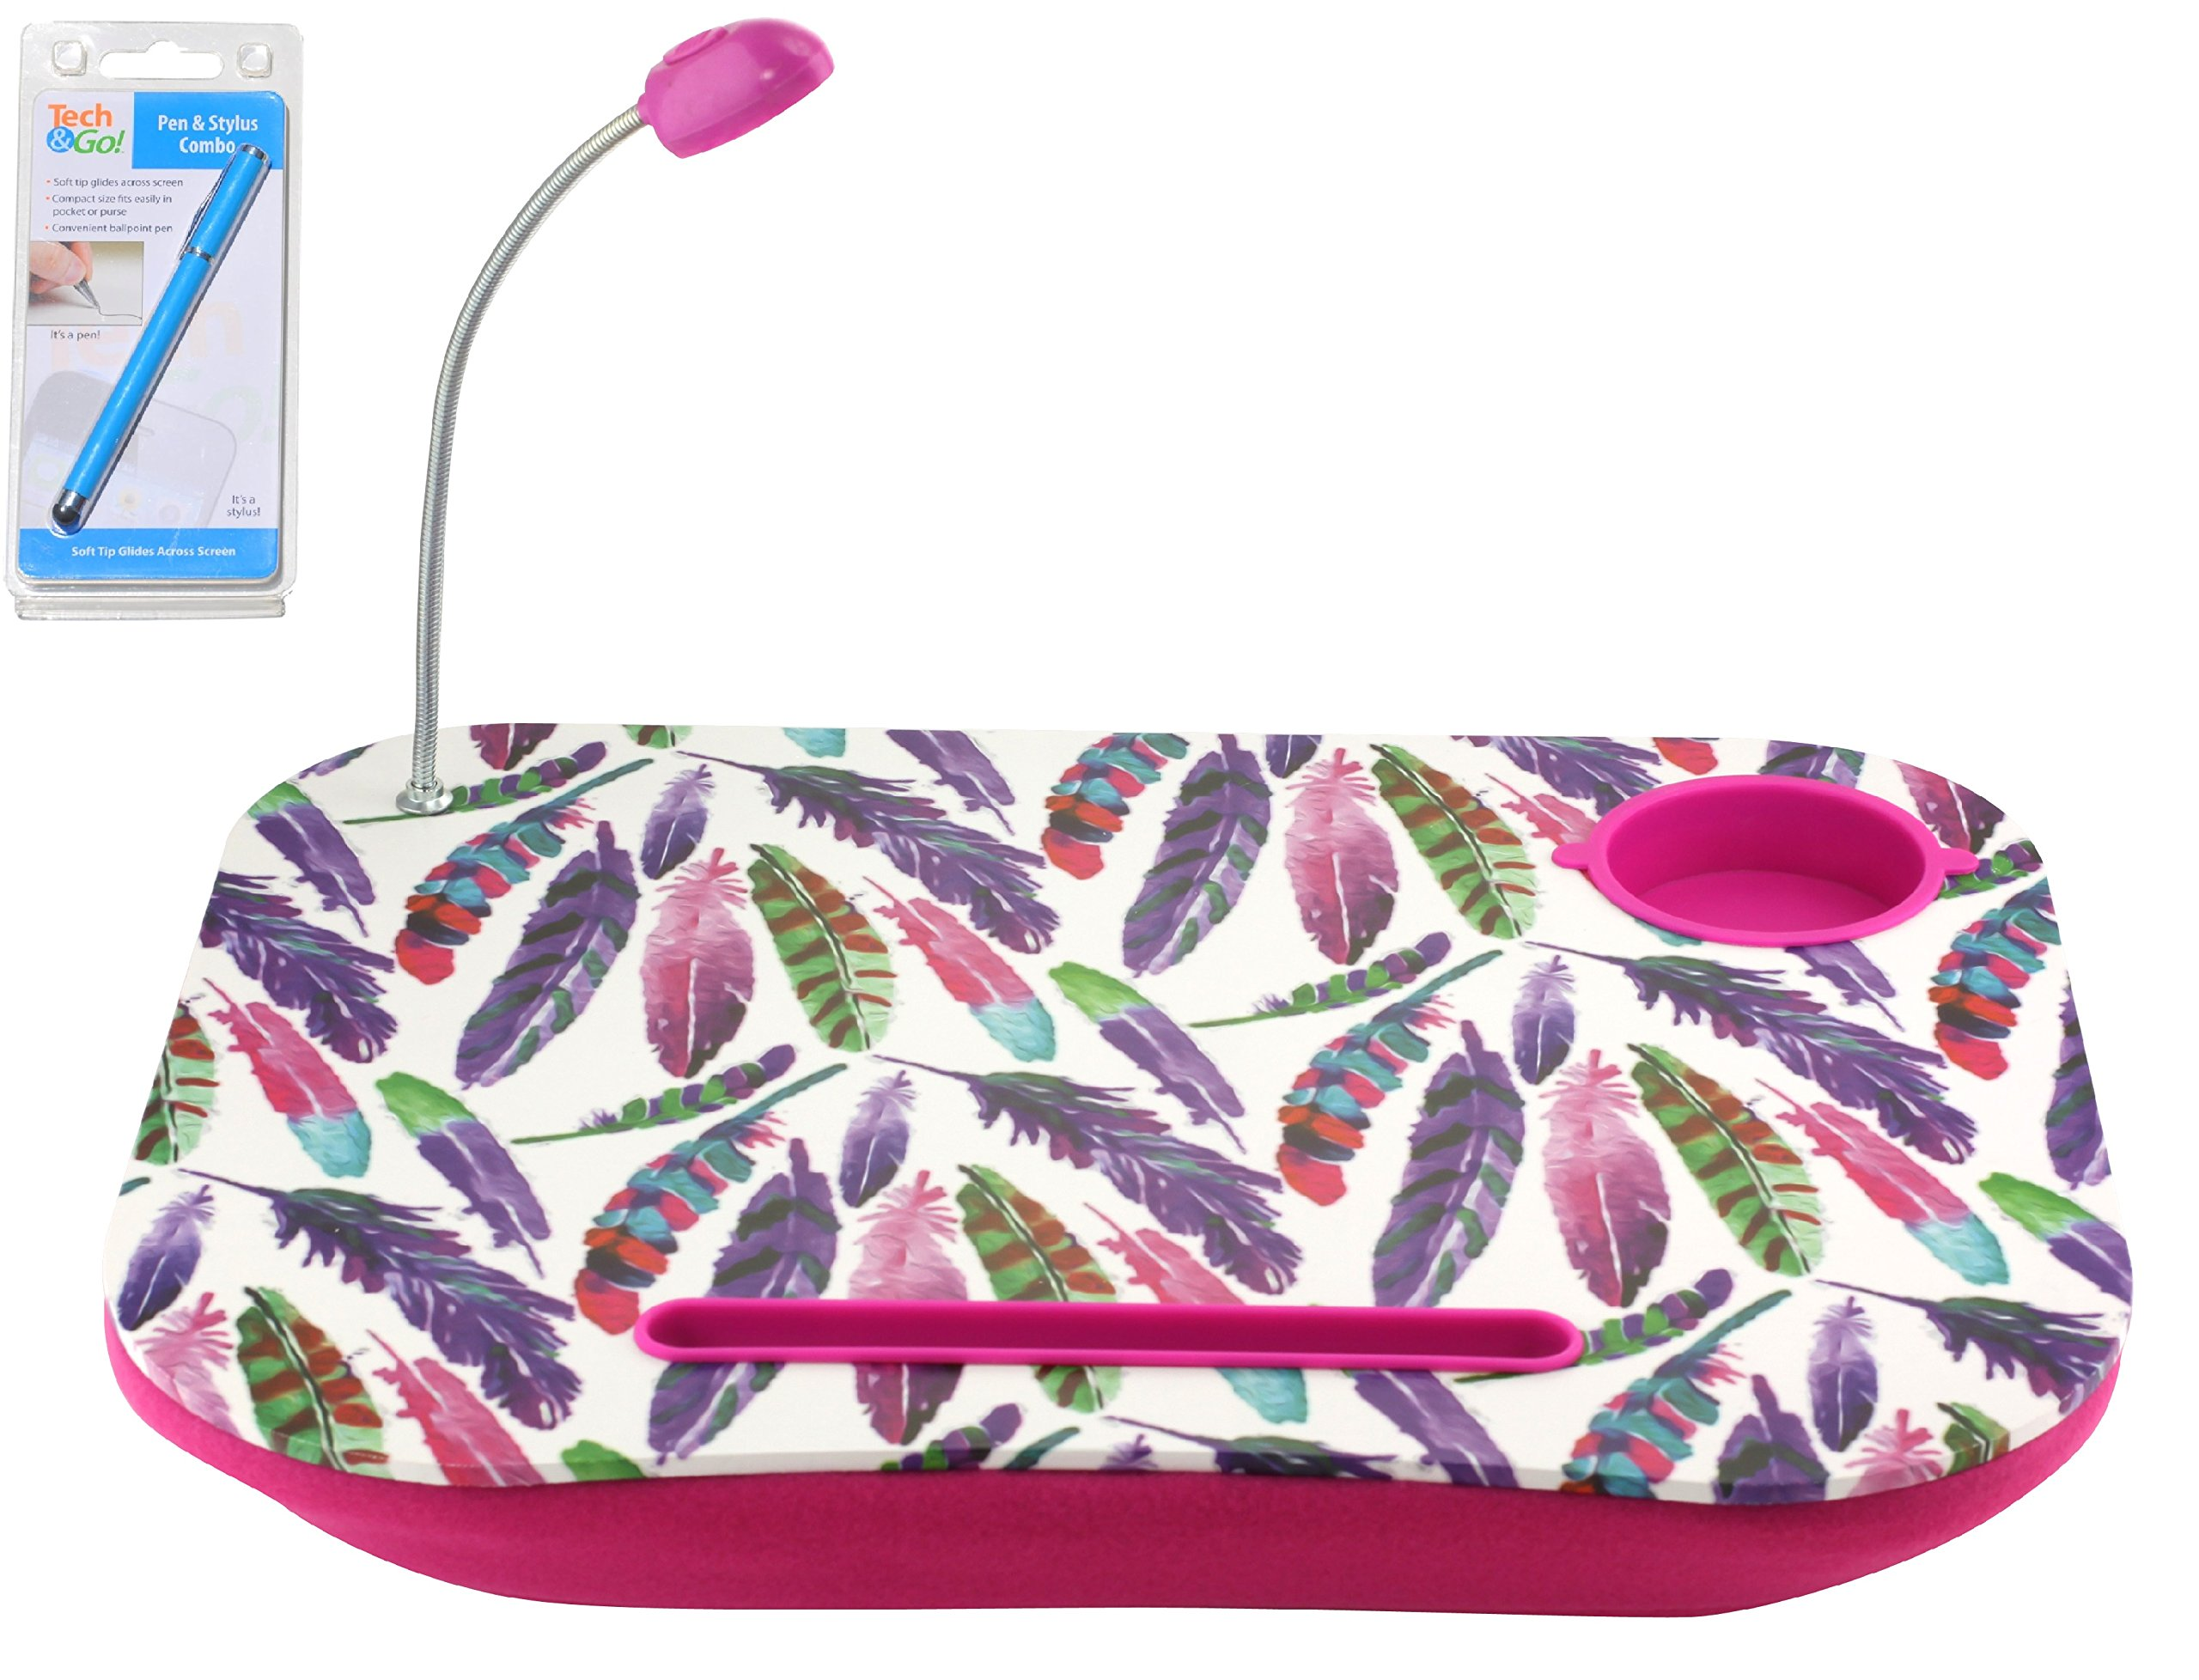 Feather Portable Laptop Tablet Notebook Computer Lap Desk with Cup Holder Light Cushion Pillow Best Unique Gift for Girls Boys Teens Kids Adults with Stylus